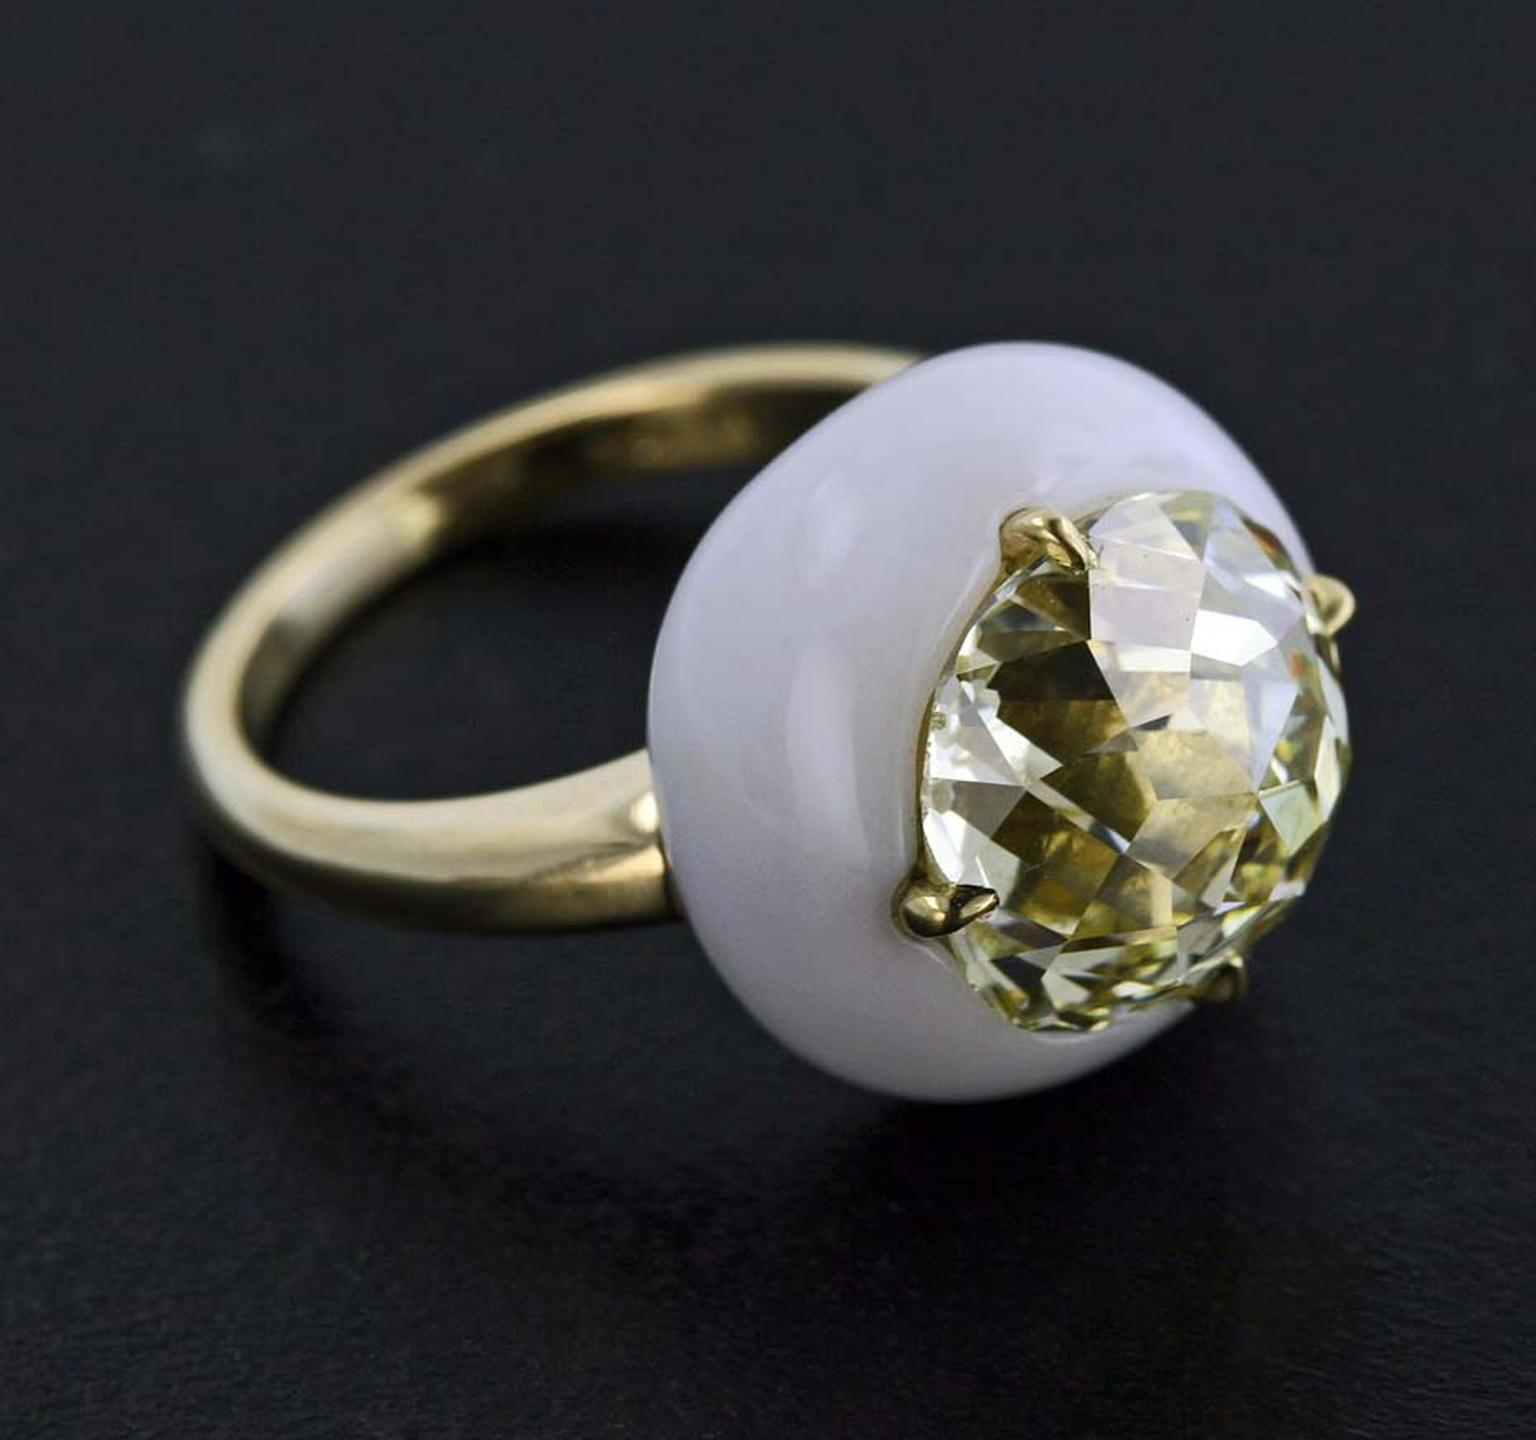 James de Givenchy Taffin Jubilee Cut diamond, cacholong and yellow gold ring.